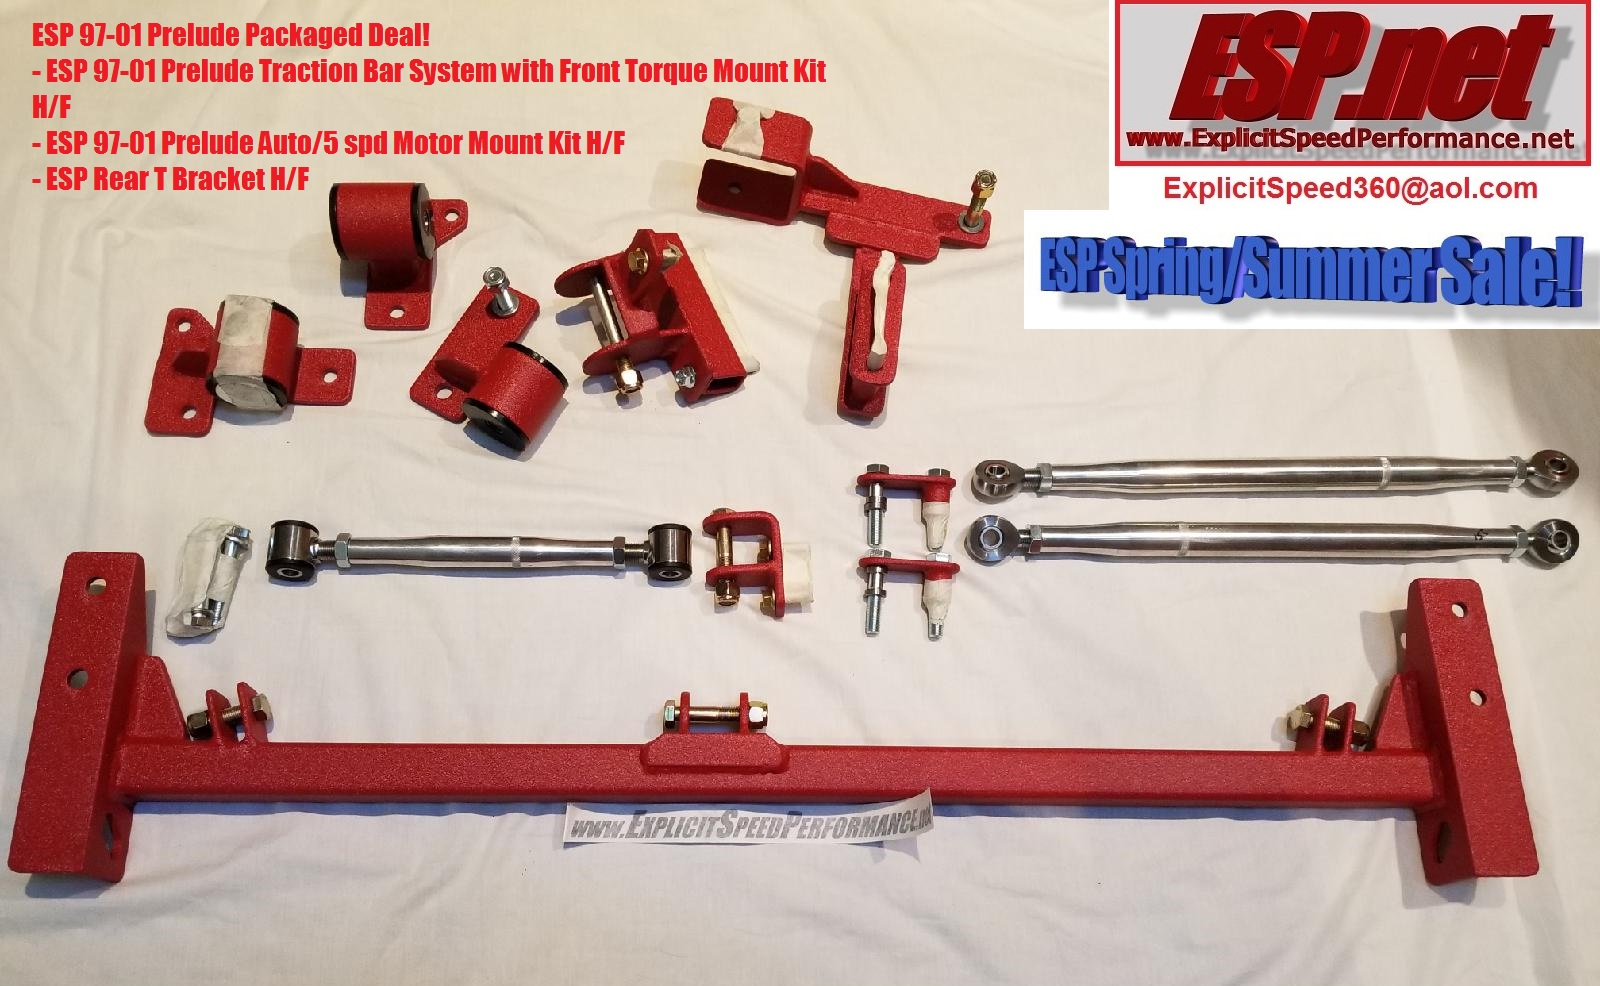 Explicit Speed Performance 1997 Jdm Honda Accord Vacuum Diagram Hondatech Front Upper Adjustable Control Arms Aka Camber Kit Have The Below Chassis